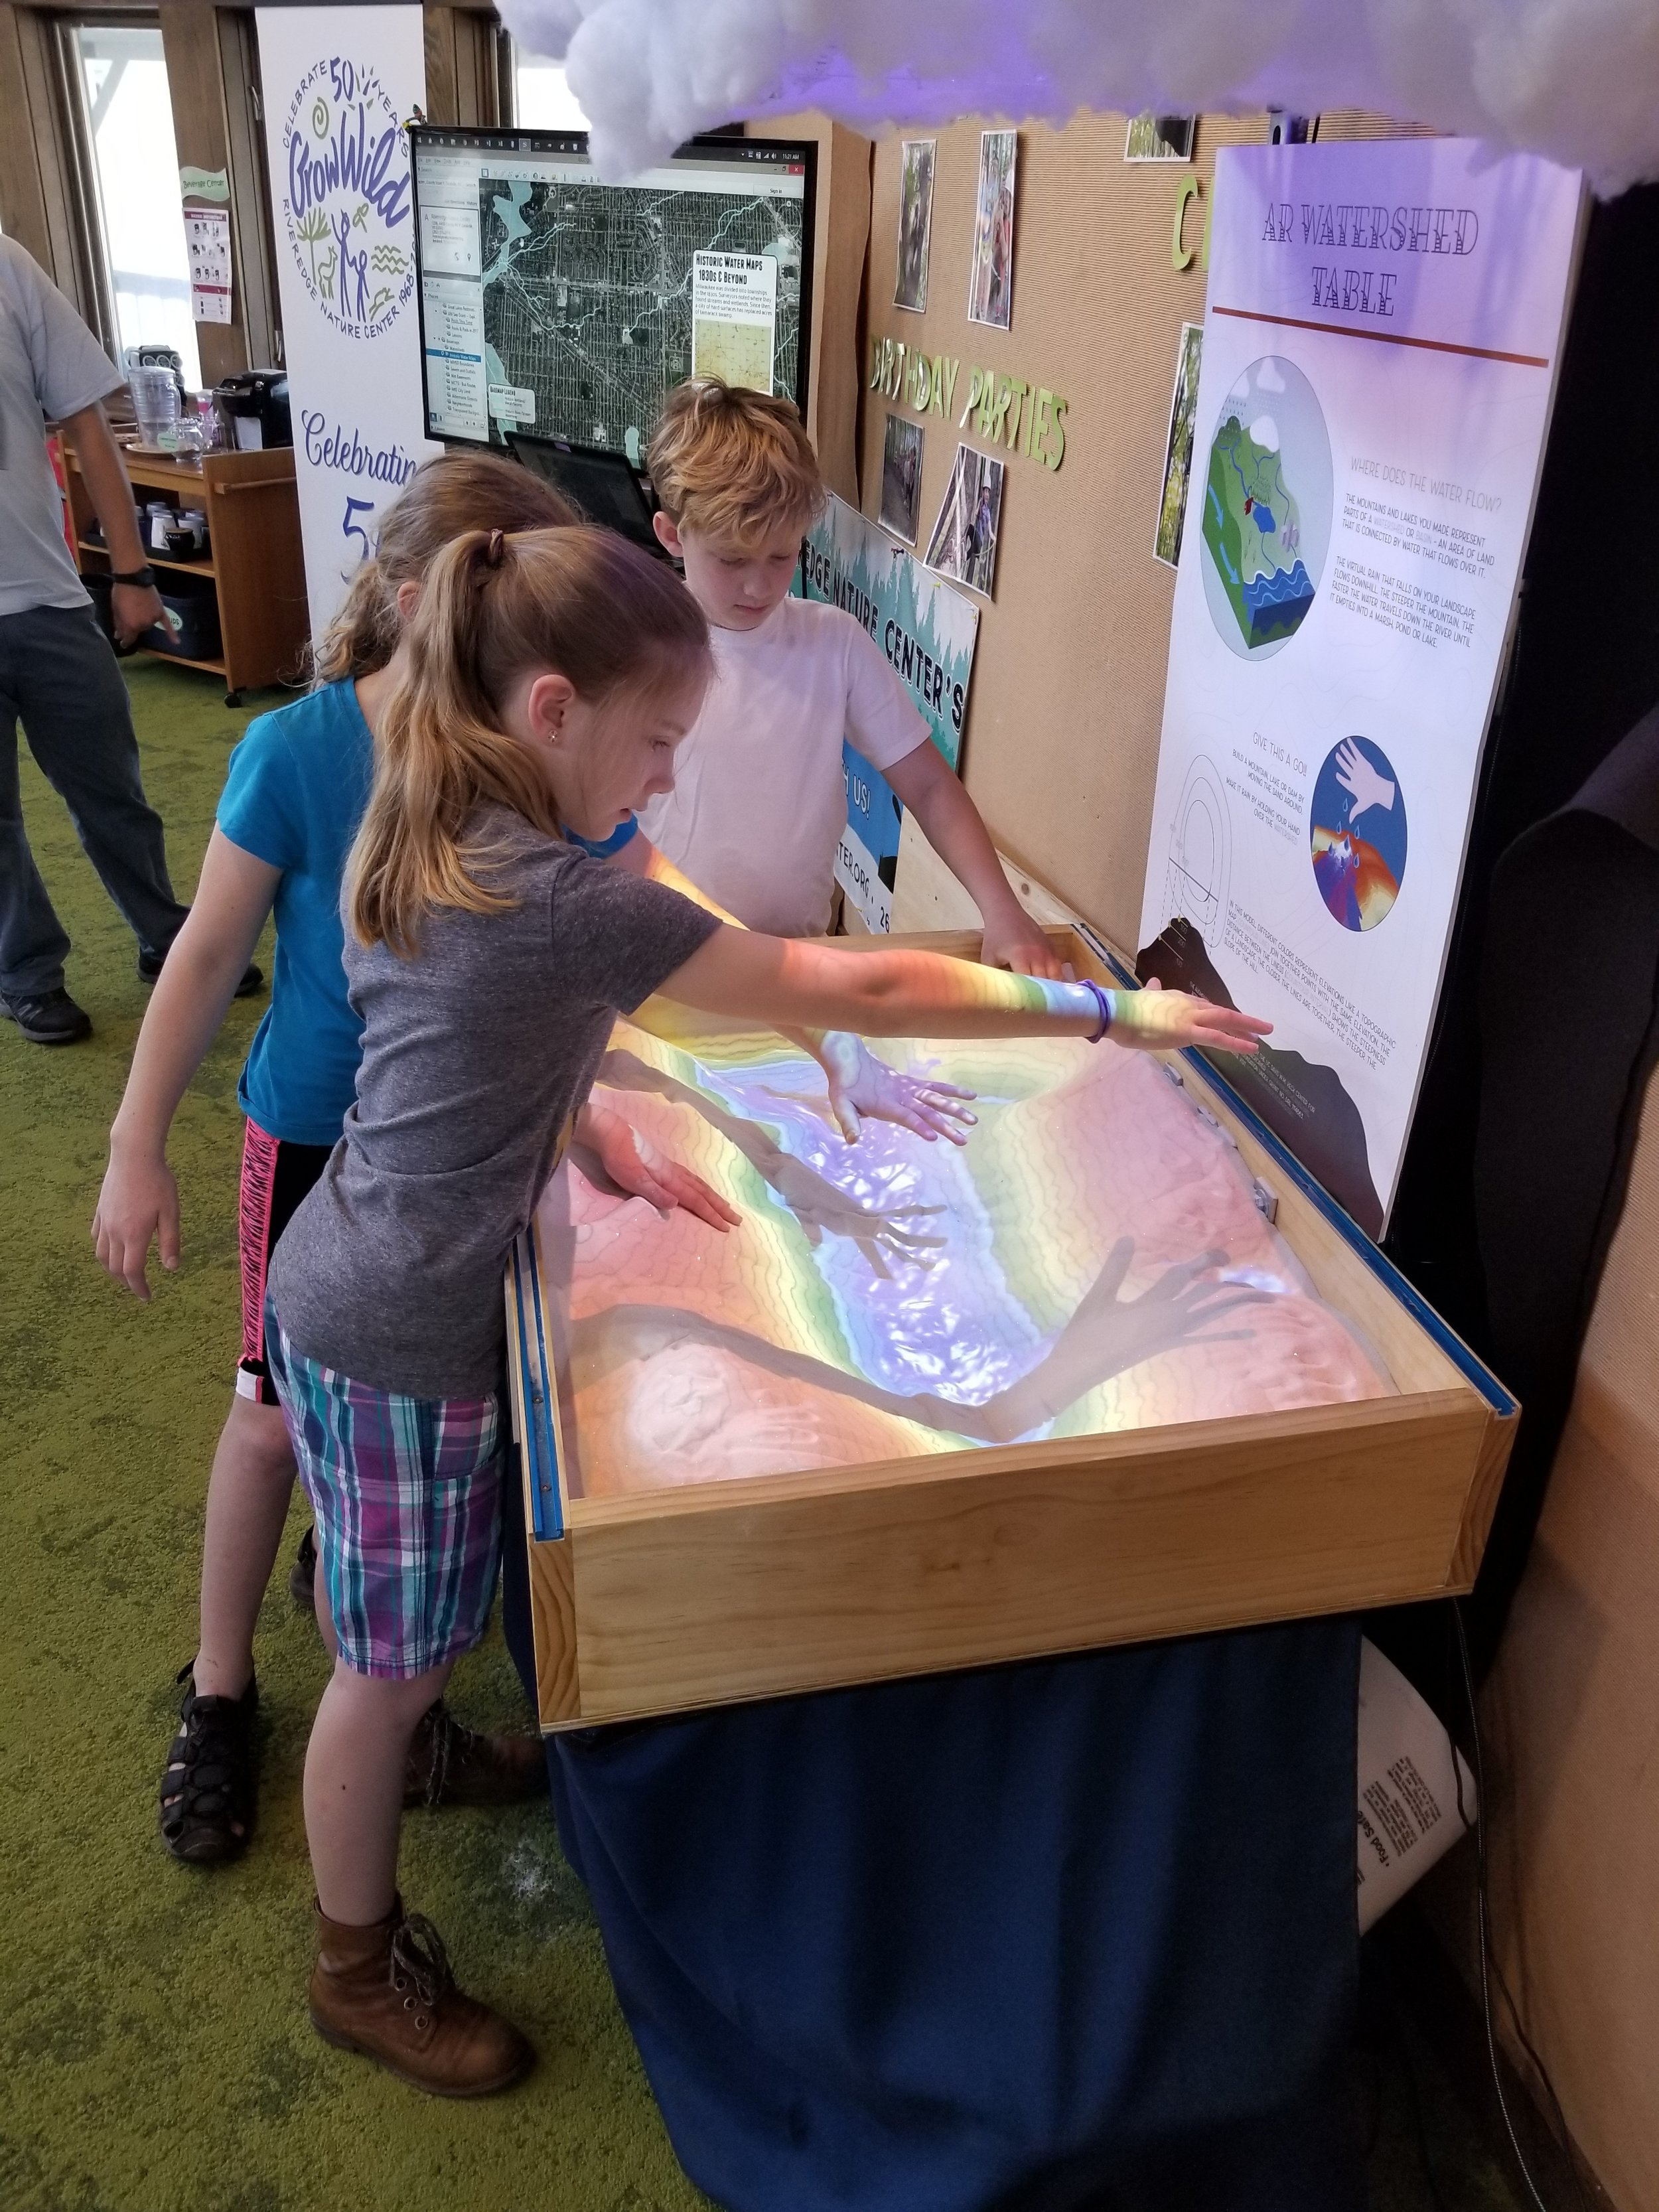 Back in the sandbox again... The AR table unleashes and augments the imagination.